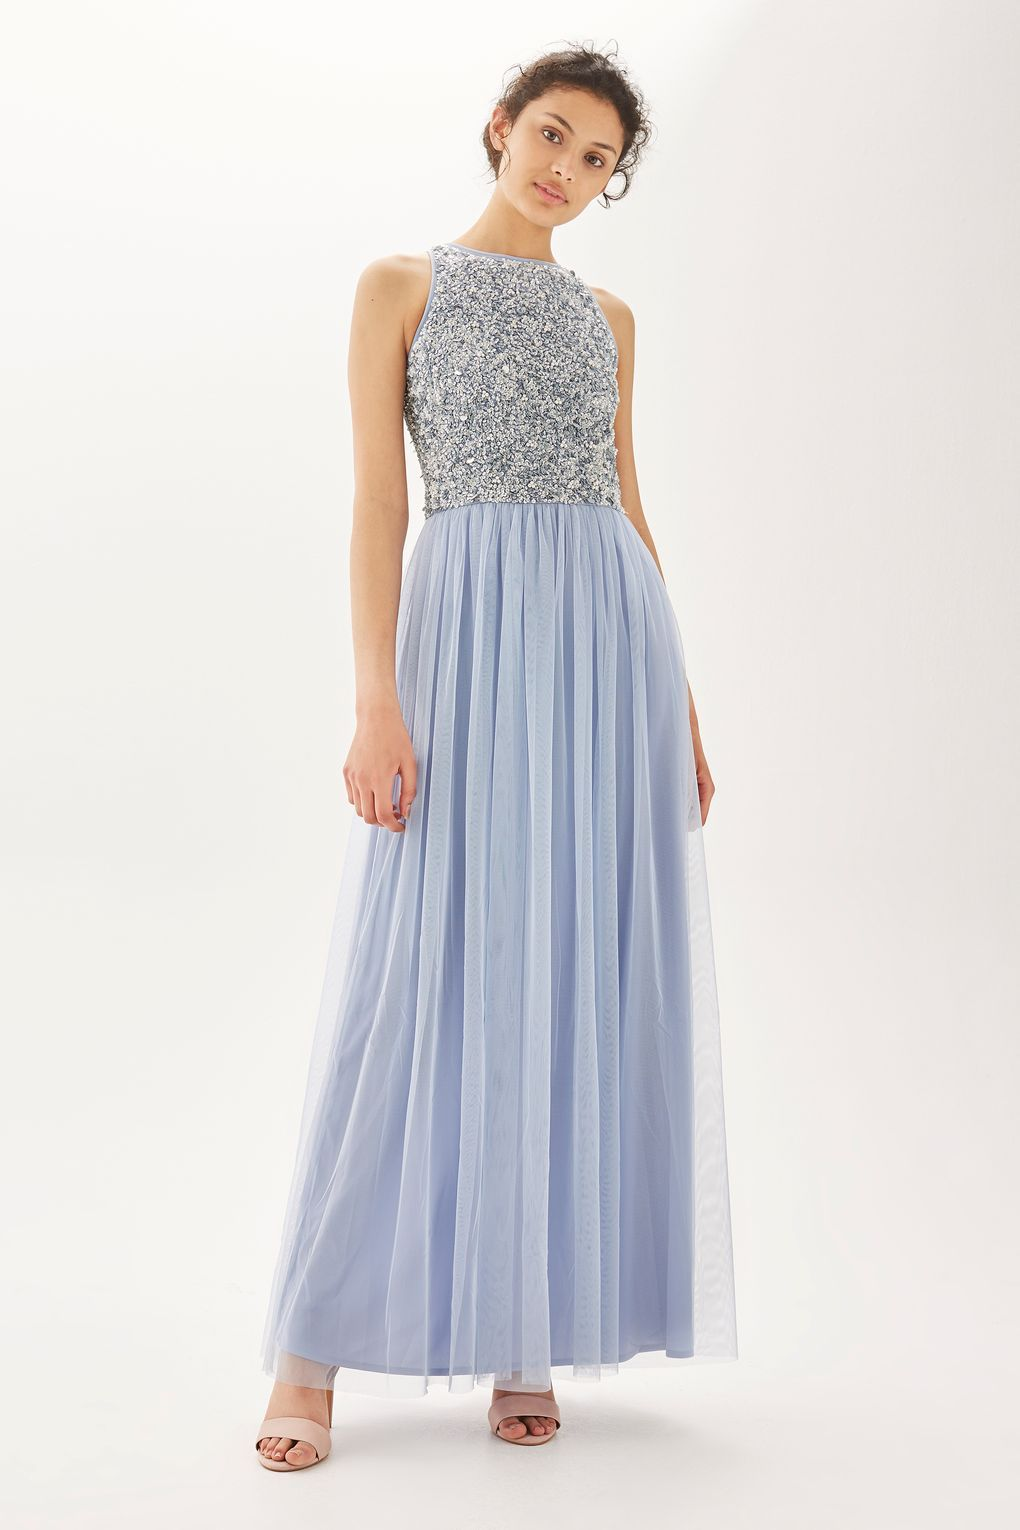 Picasso Maxi Dress by Lace & Beads - Dresses - Clothing